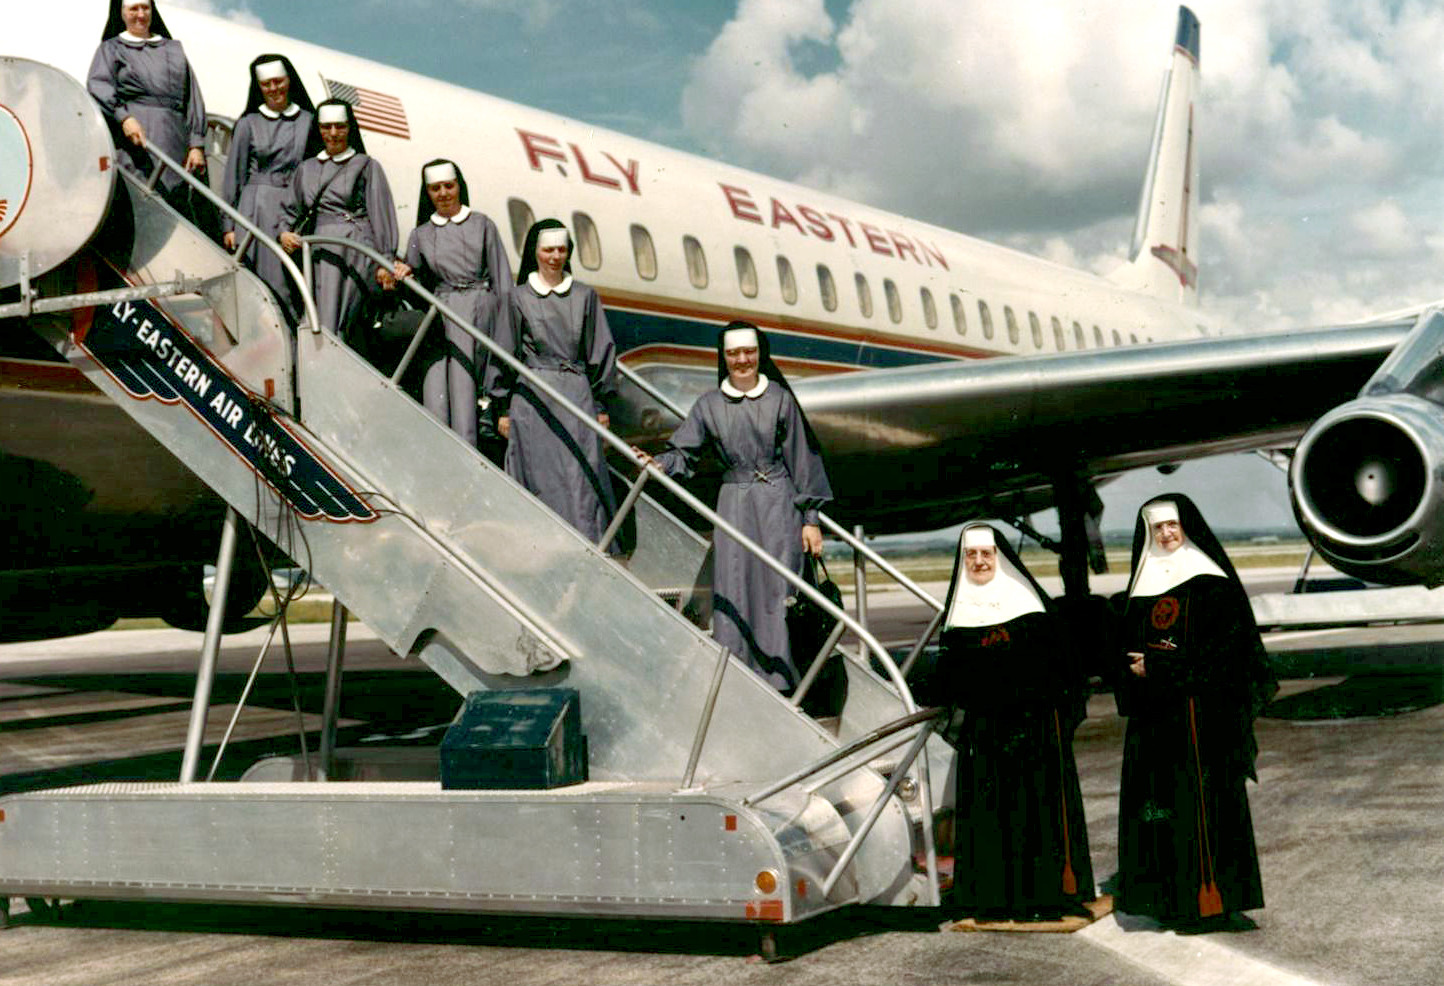 In 1964, in response to an appeal from the Church, six Sisters left San Antonio for Chimbote, Peru. Pictured in a special gray habit are Sisters Charles Marie Frank, Mary Mark Gerken, Maria Felicitas Villegas, Rosalina Acosta, Louis Katharine Schuler, and Gwendolyn Grothoff. Mothers Mary Clare Cronly and Mary Calvary Le Page accompanied the Sisters to the airport.